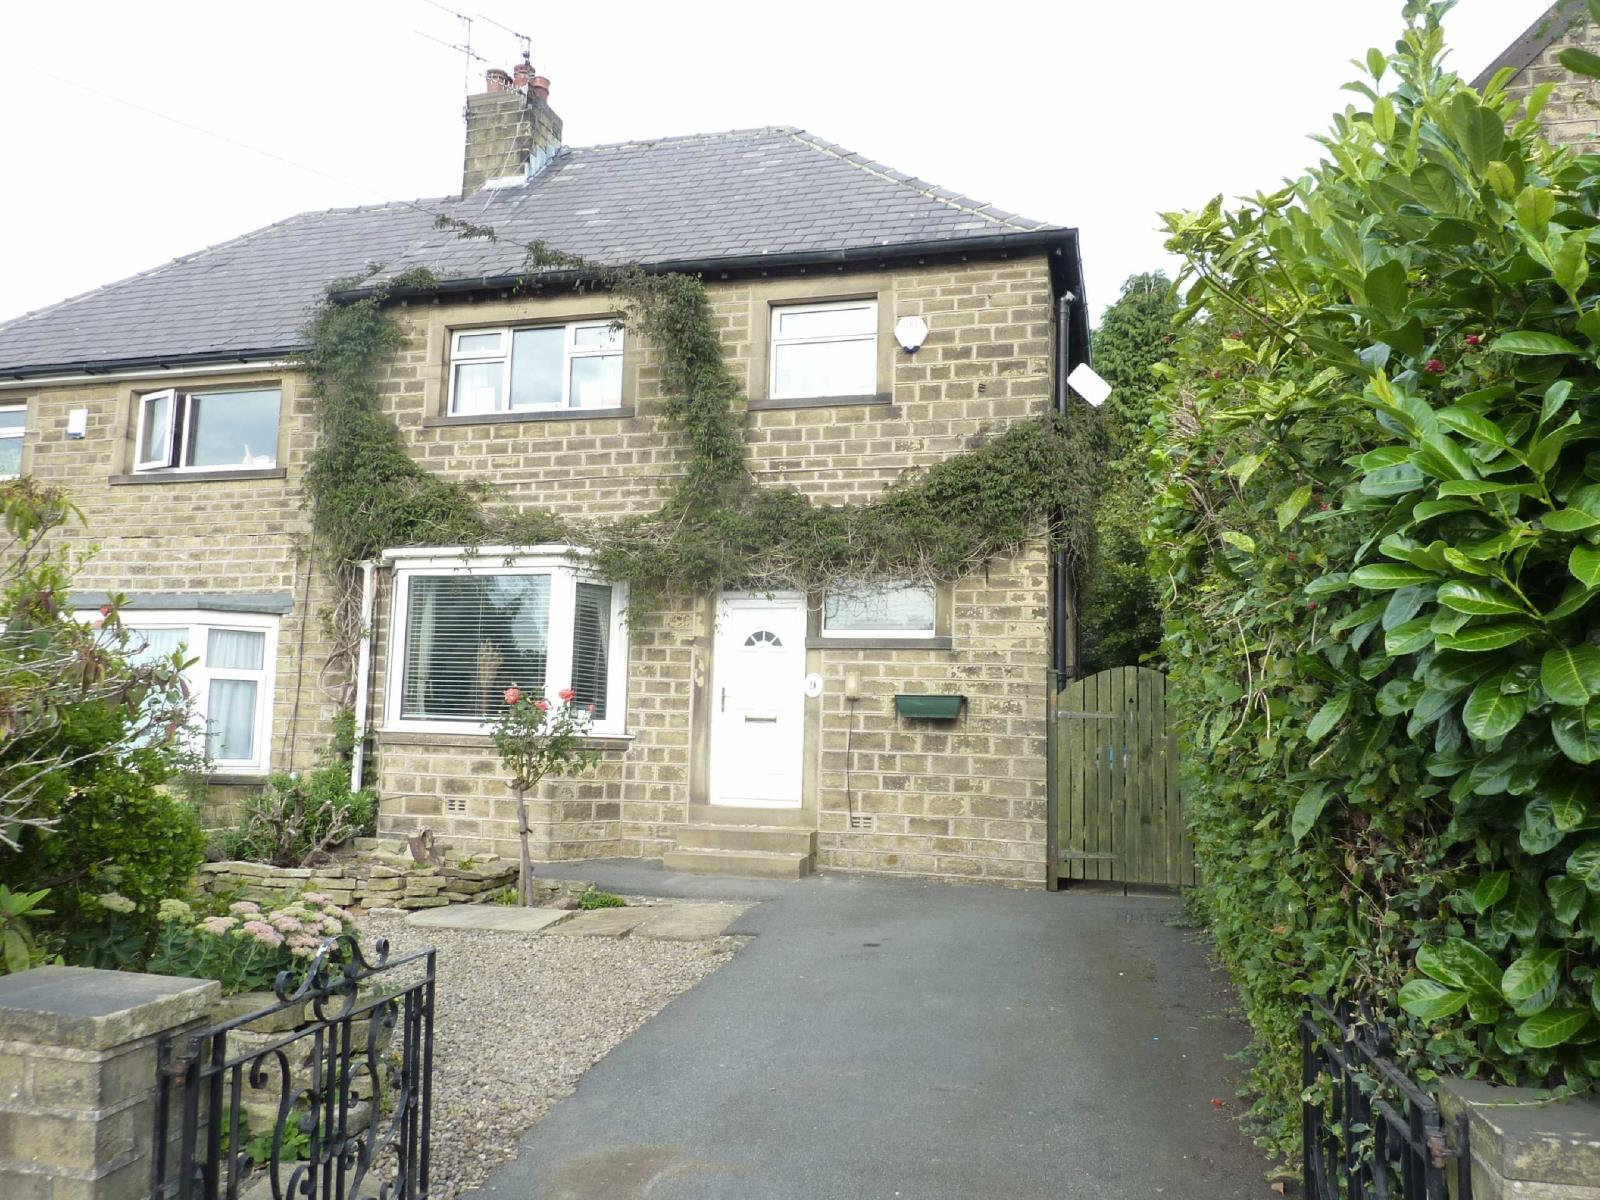 3 Bedrooms Semi Detached House for sale in Longley Lane, Longley, Huddersfield, West Yorkshire, HD4